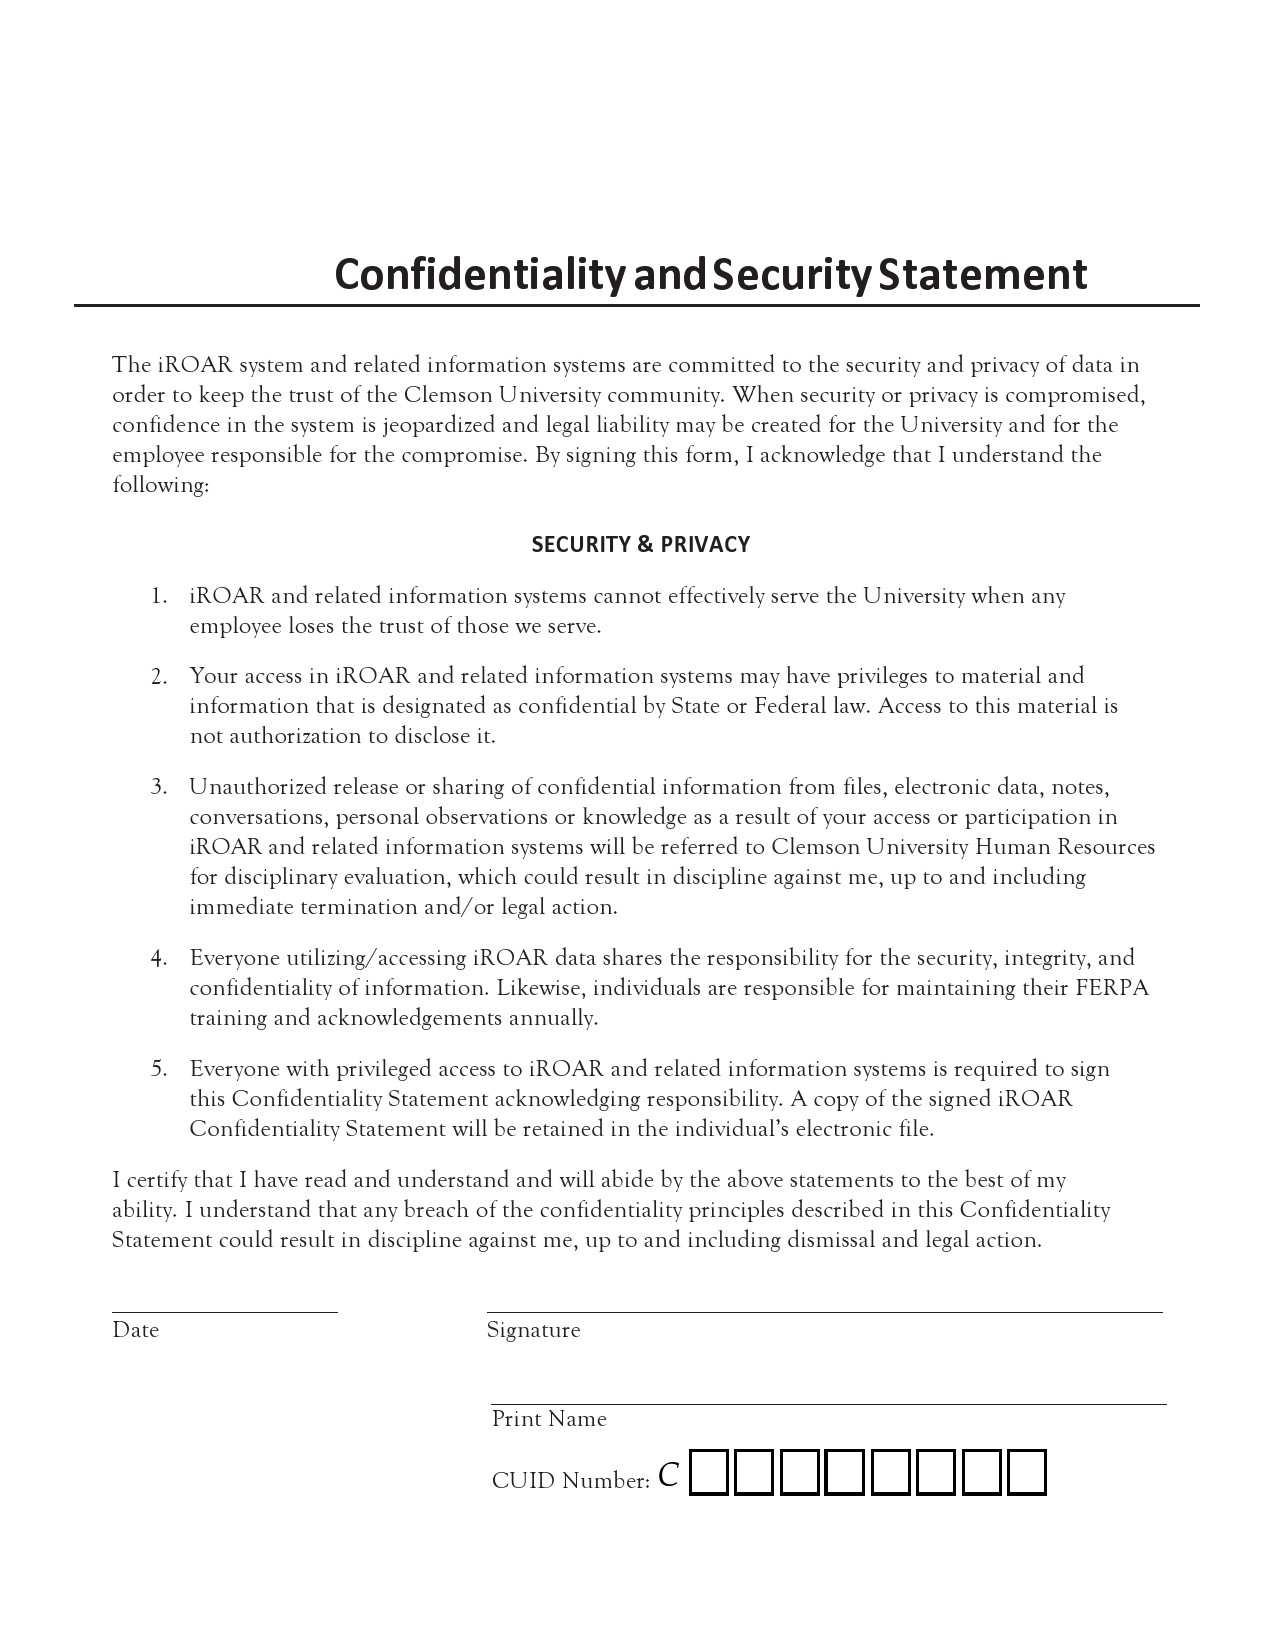 Free confidentiality statement 28